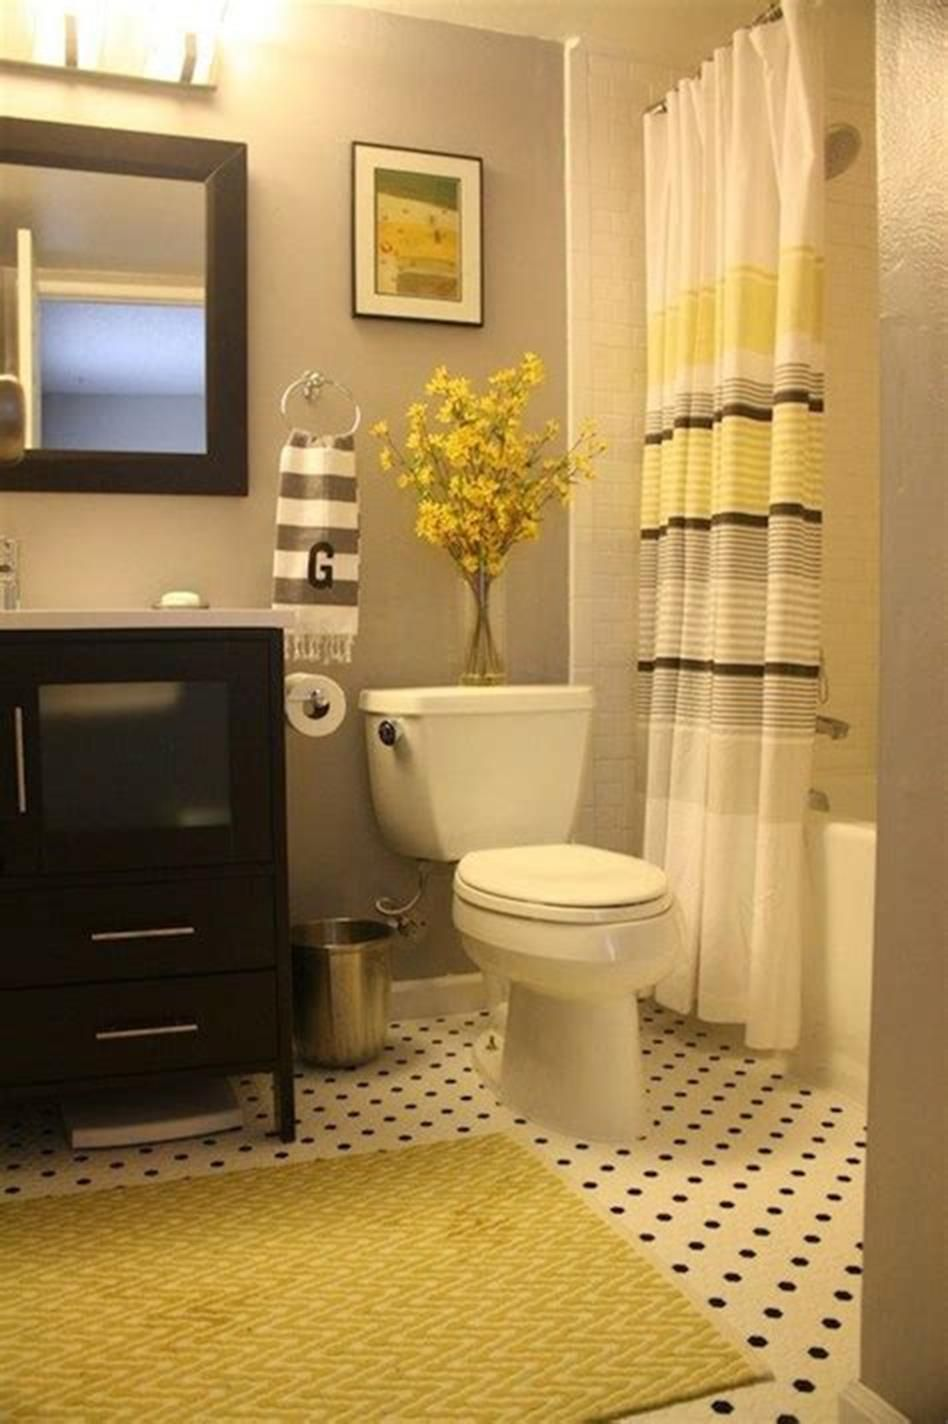 38 Best Bathroom Color Scheme Ideas for 2020 | Yellow ...